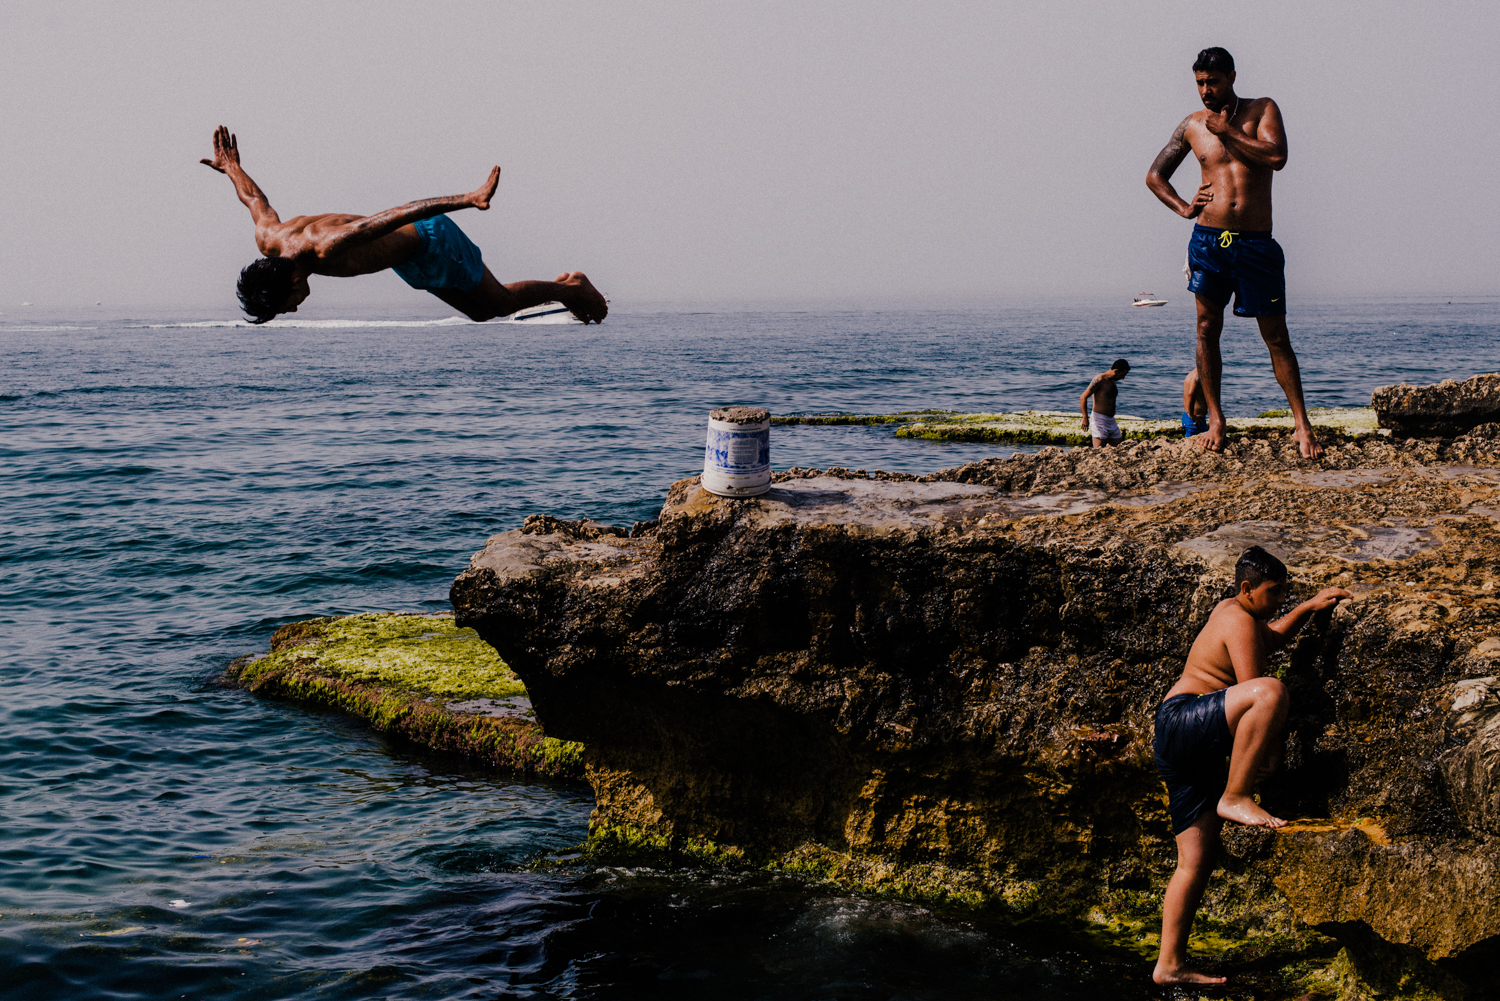 Divers at the Beirut corniche for Monocle.